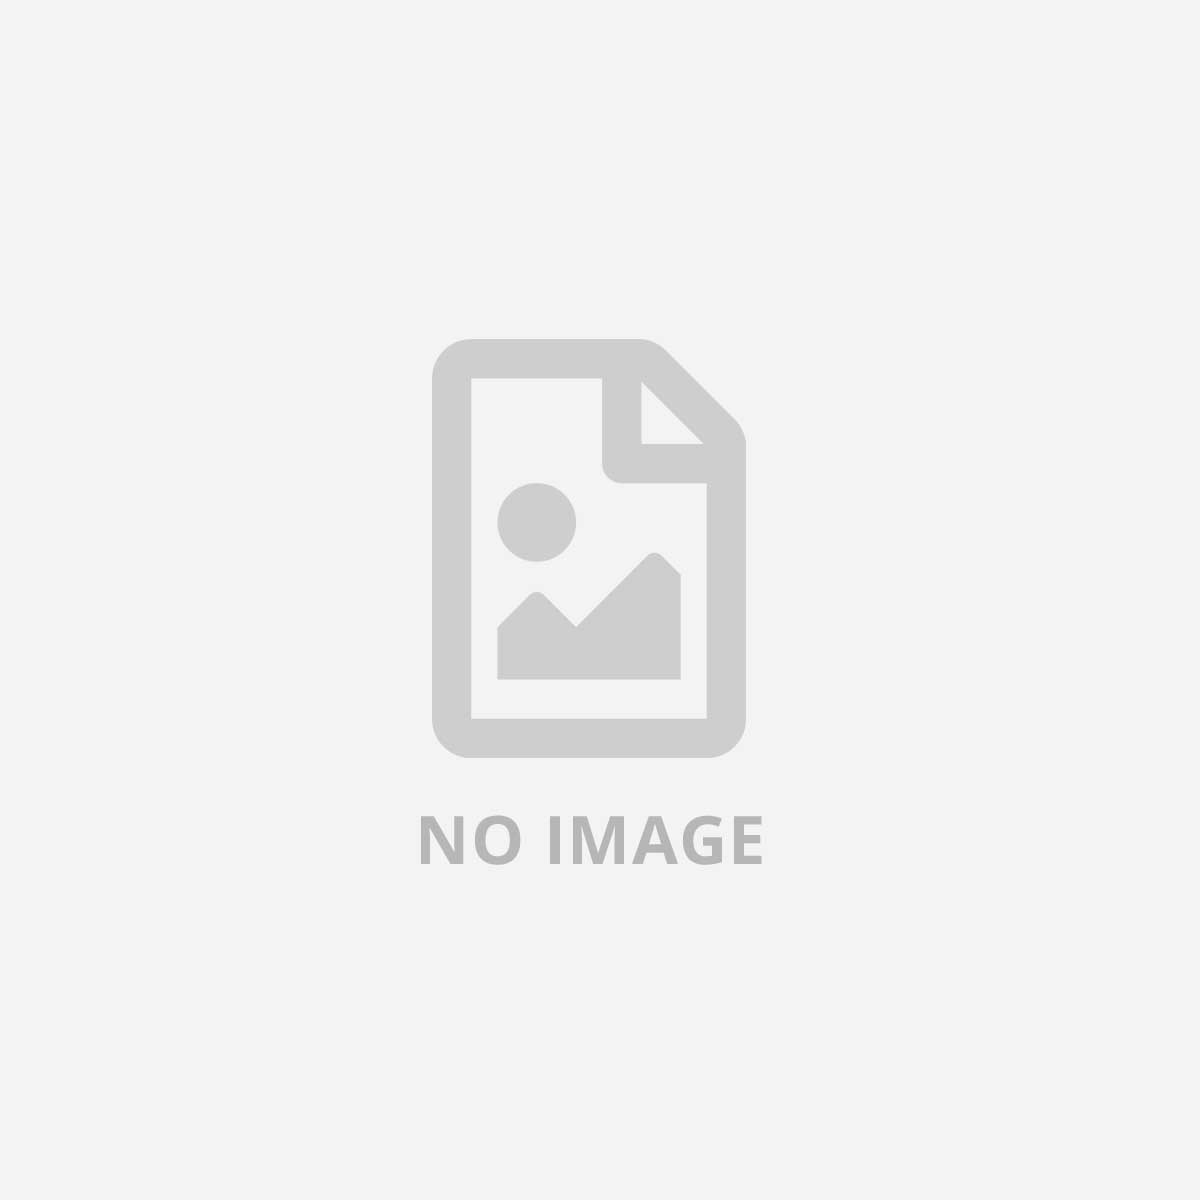 TOM TOM TOMTOM START 42 EUROPA 45 PAESI